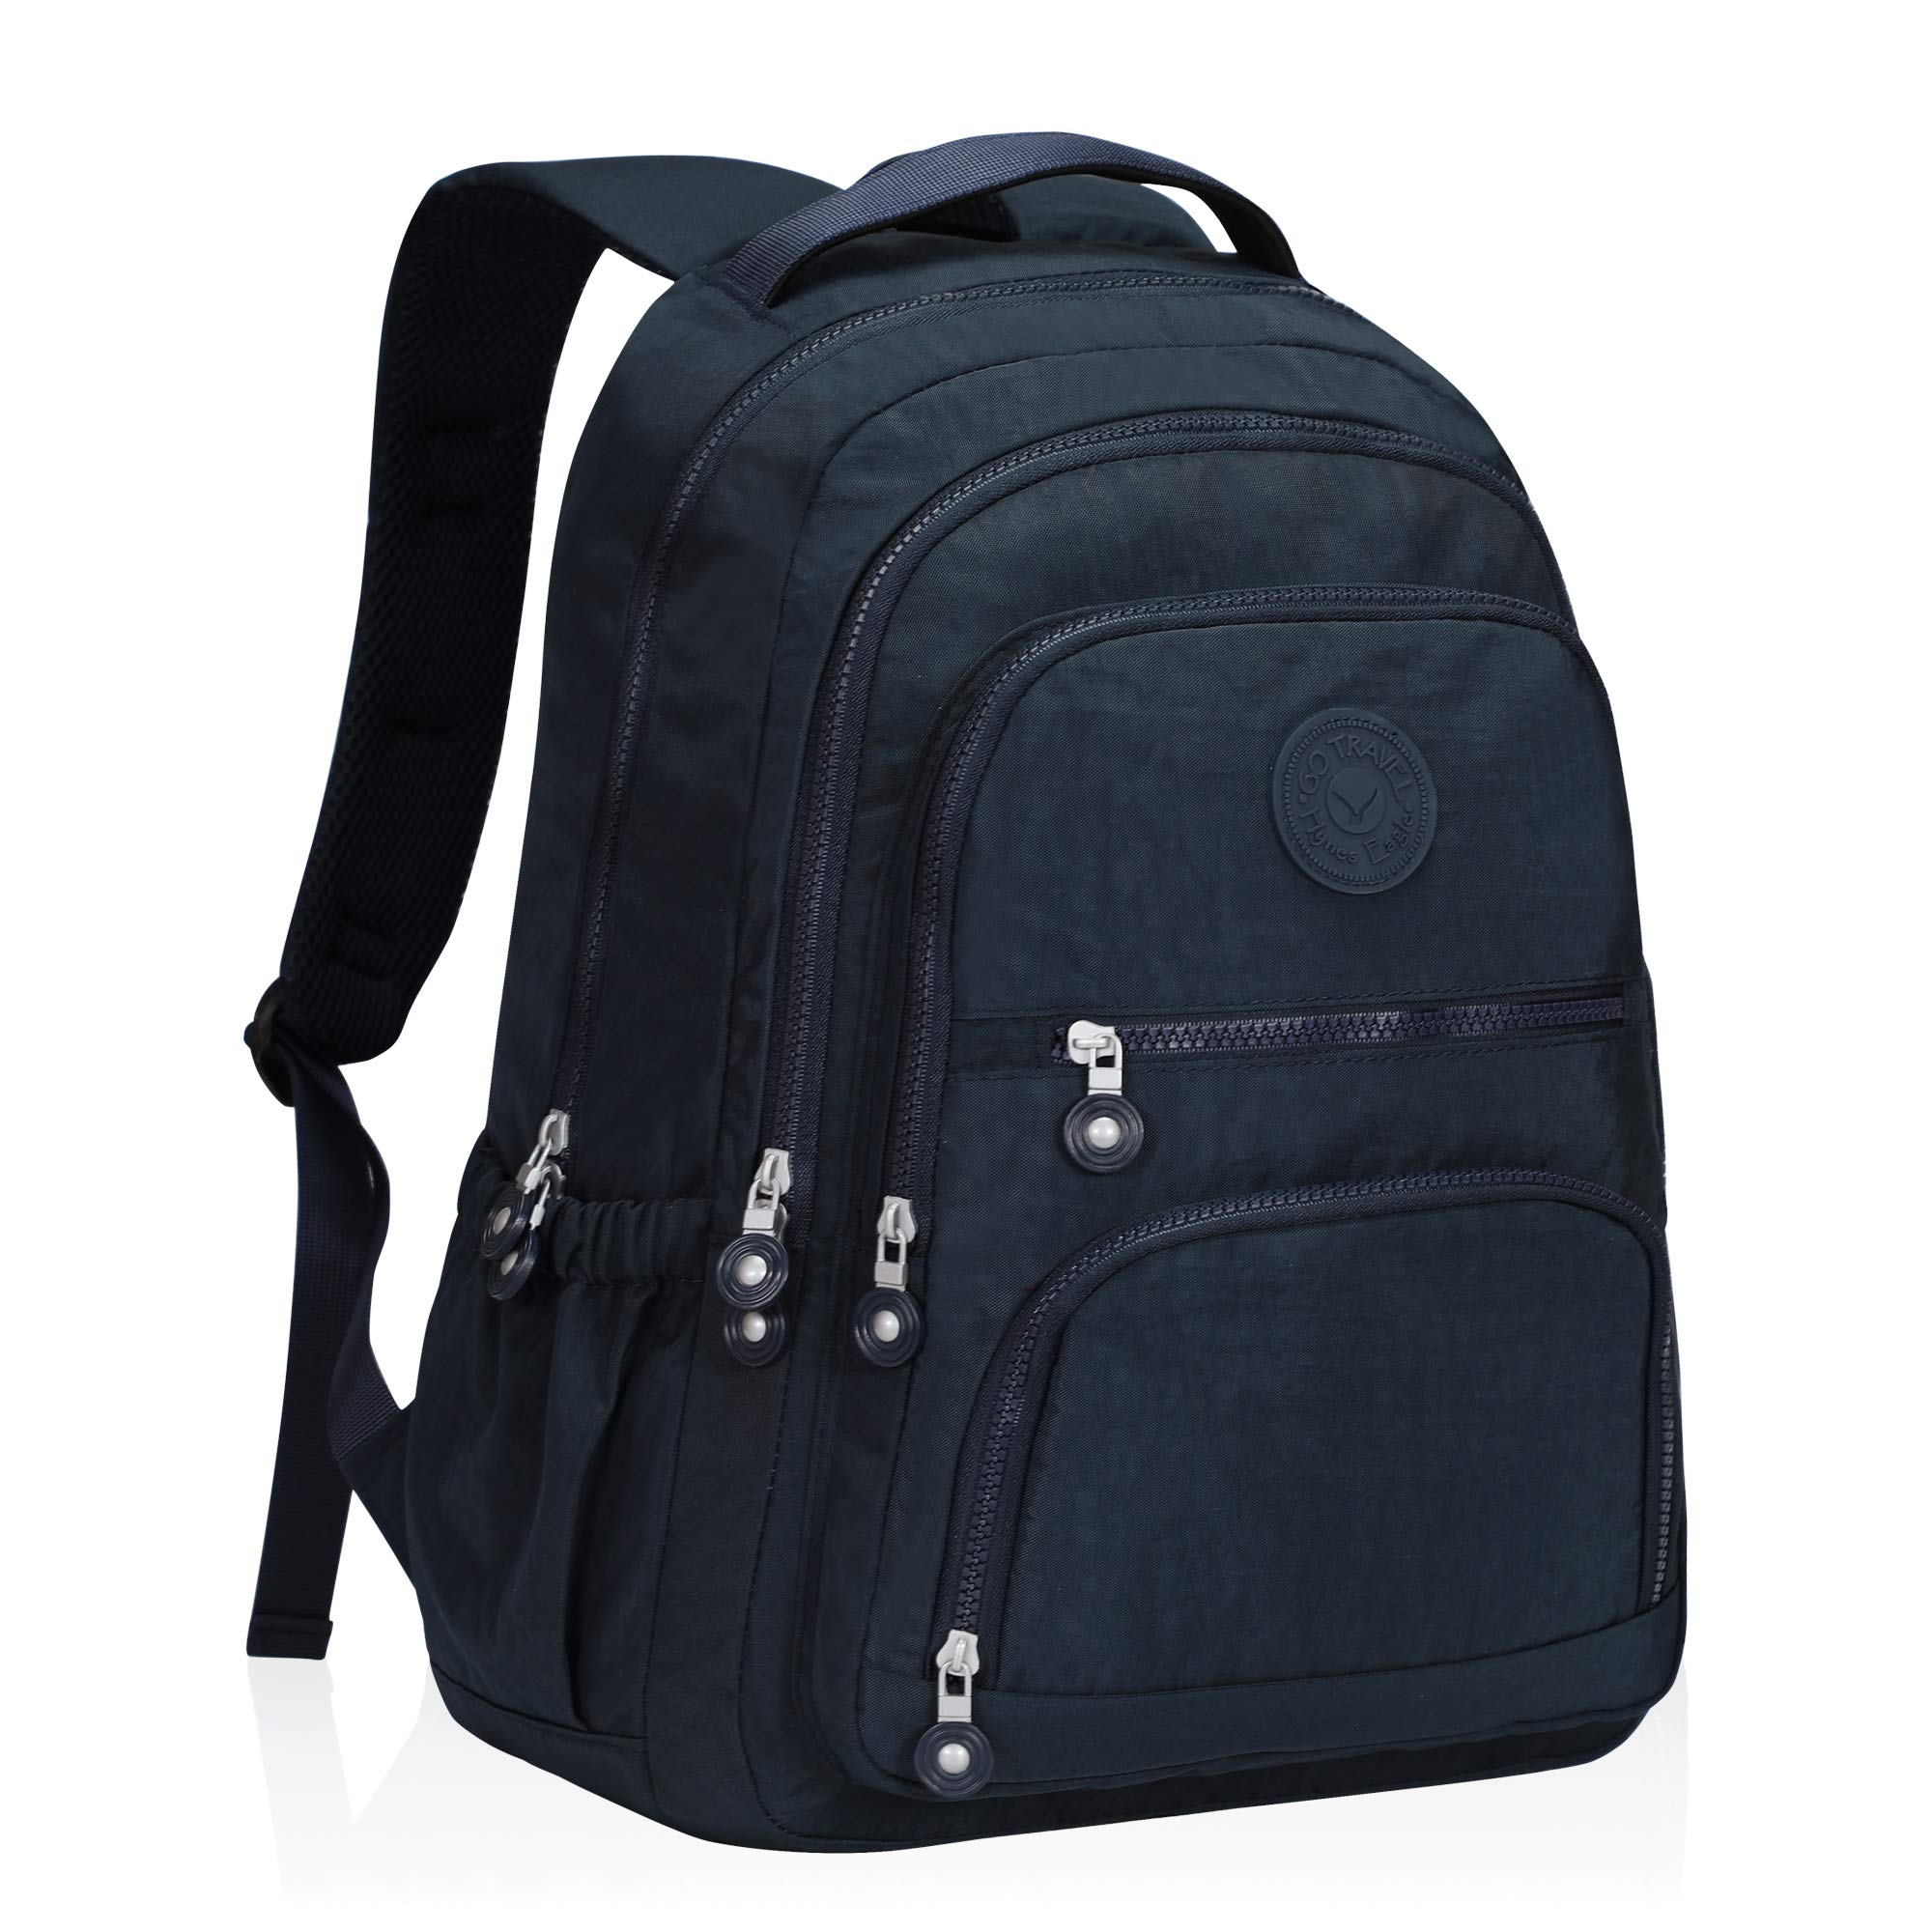 Hynes Eagle School Backpack Student Casual Daypack Laptop Backpack Fits 15.6 inches Navy Blue